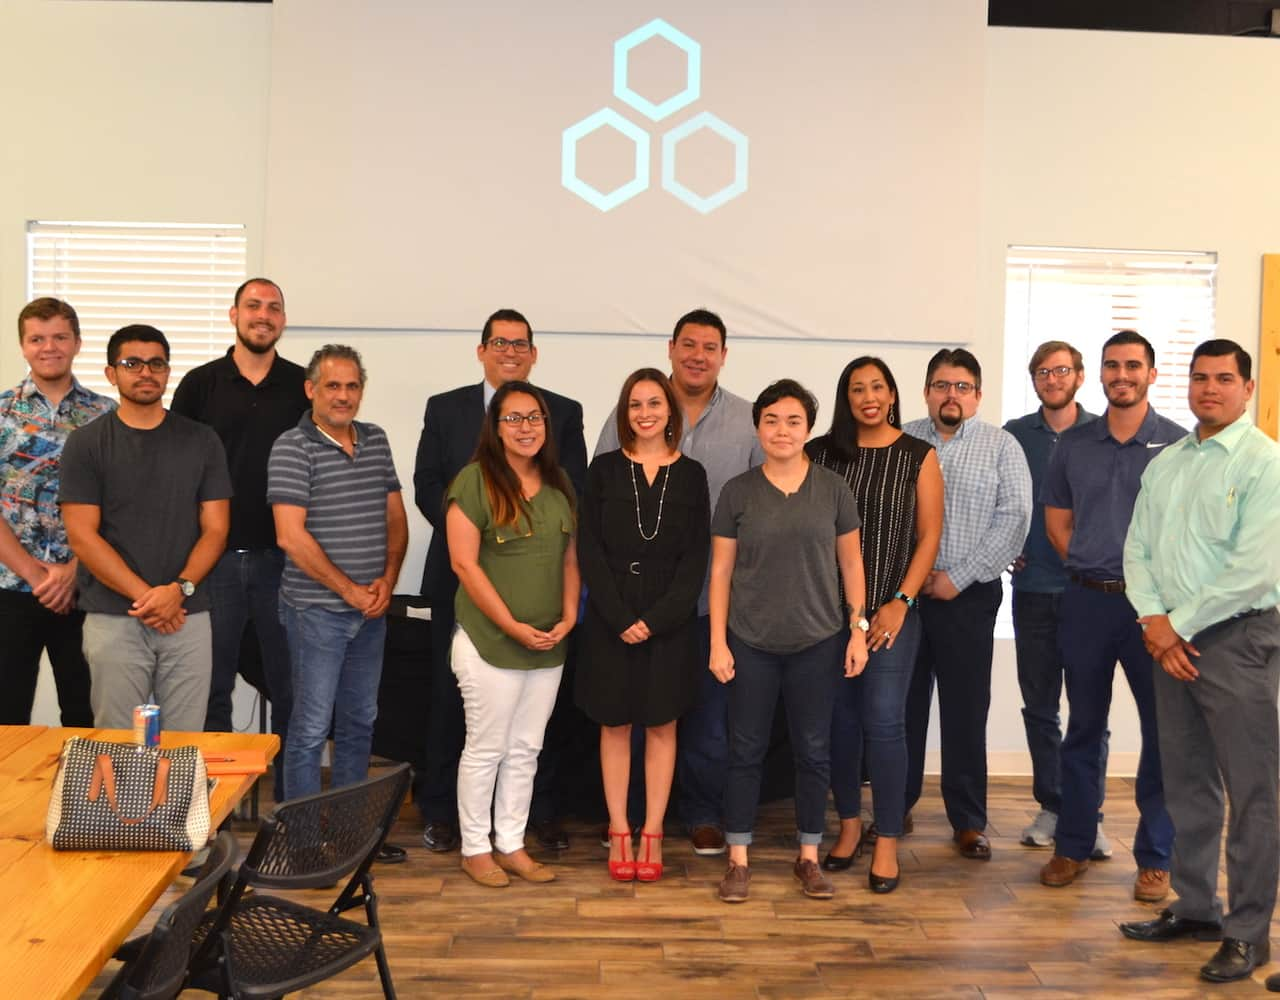 Edinburg EDC, Grindstone Coworking announce second class, of 15 individuals, for Hive Effect, which prepares small business owners to succeed - Titans of the Texas Legislature